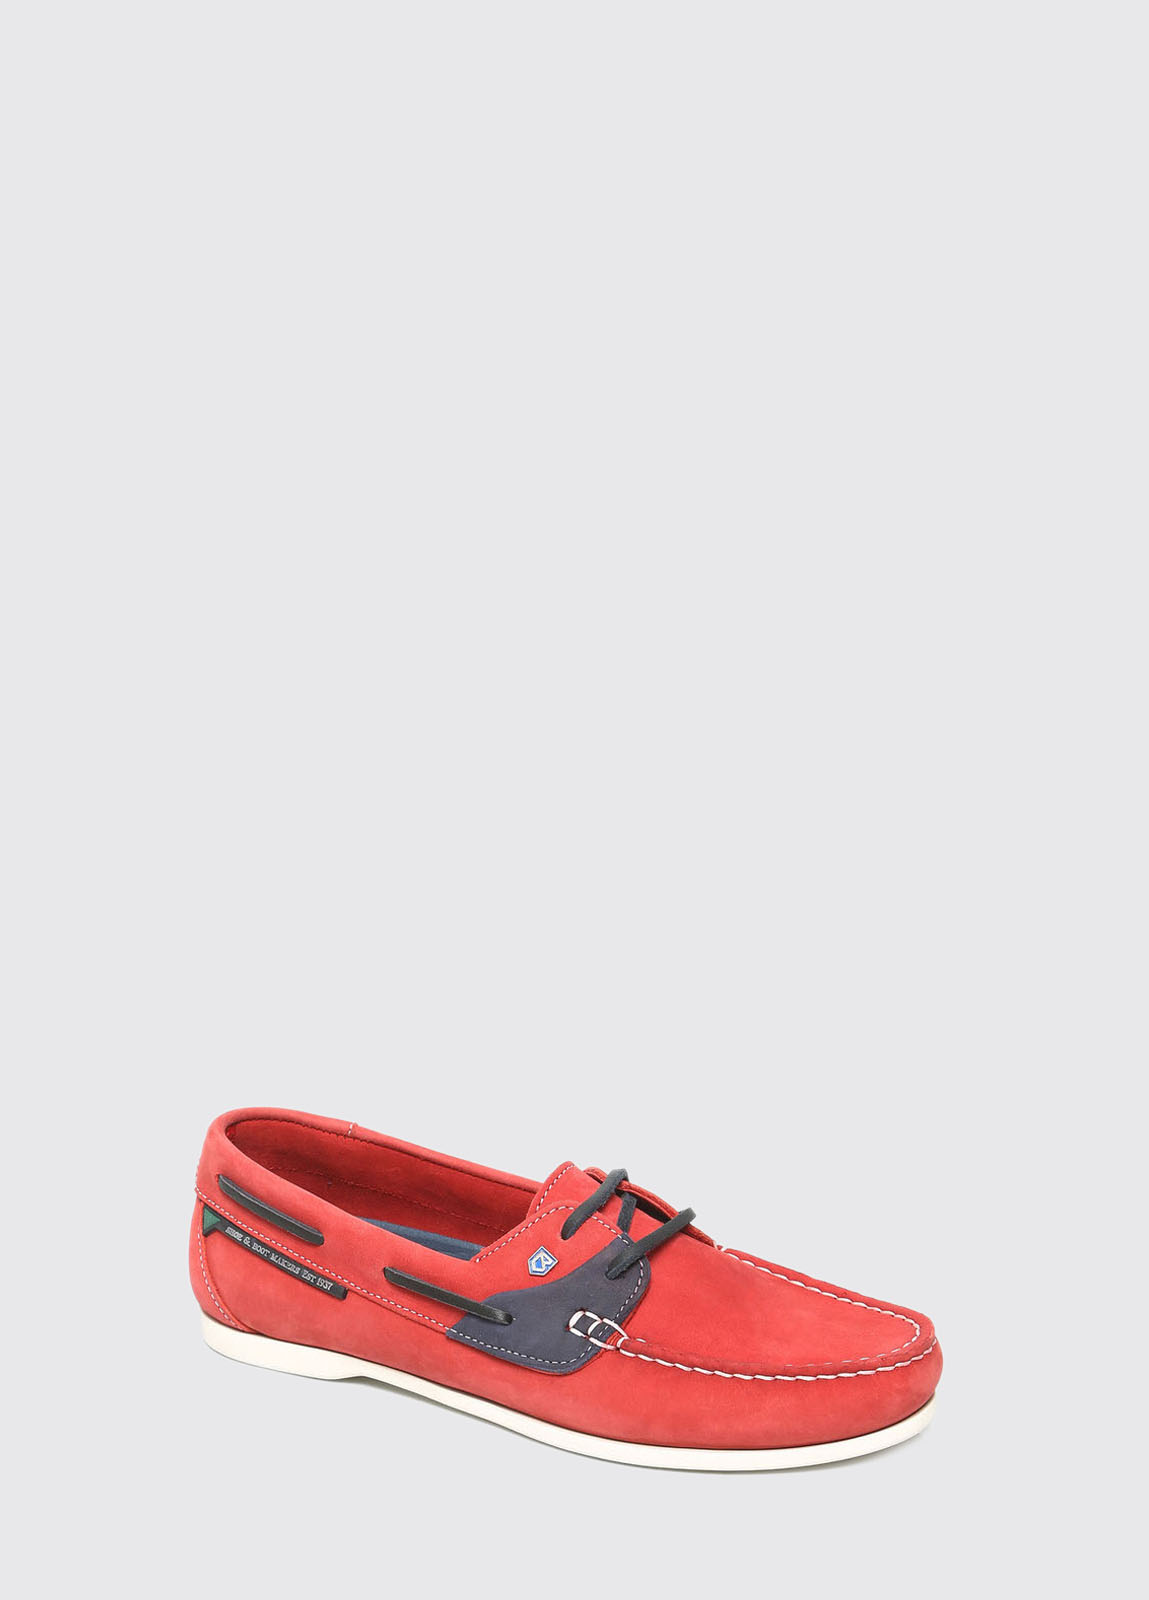 Malta Moccasins - Red